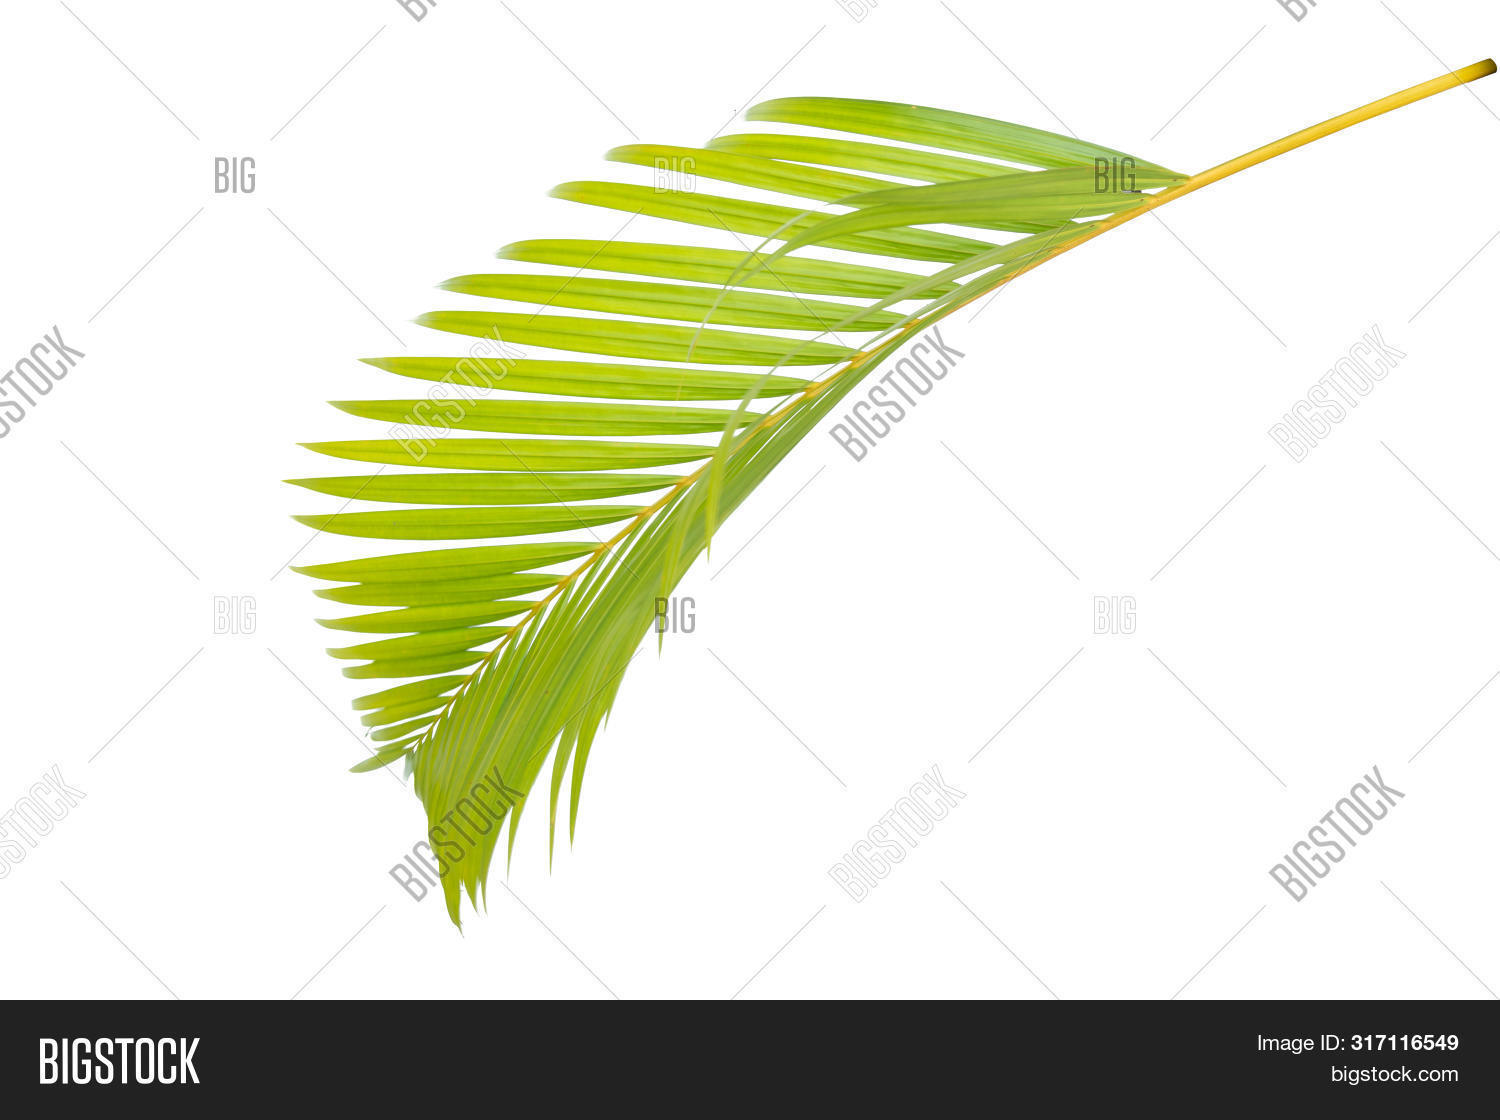 Yellow Palm Leaves Image Photo Free Trial Bigstock